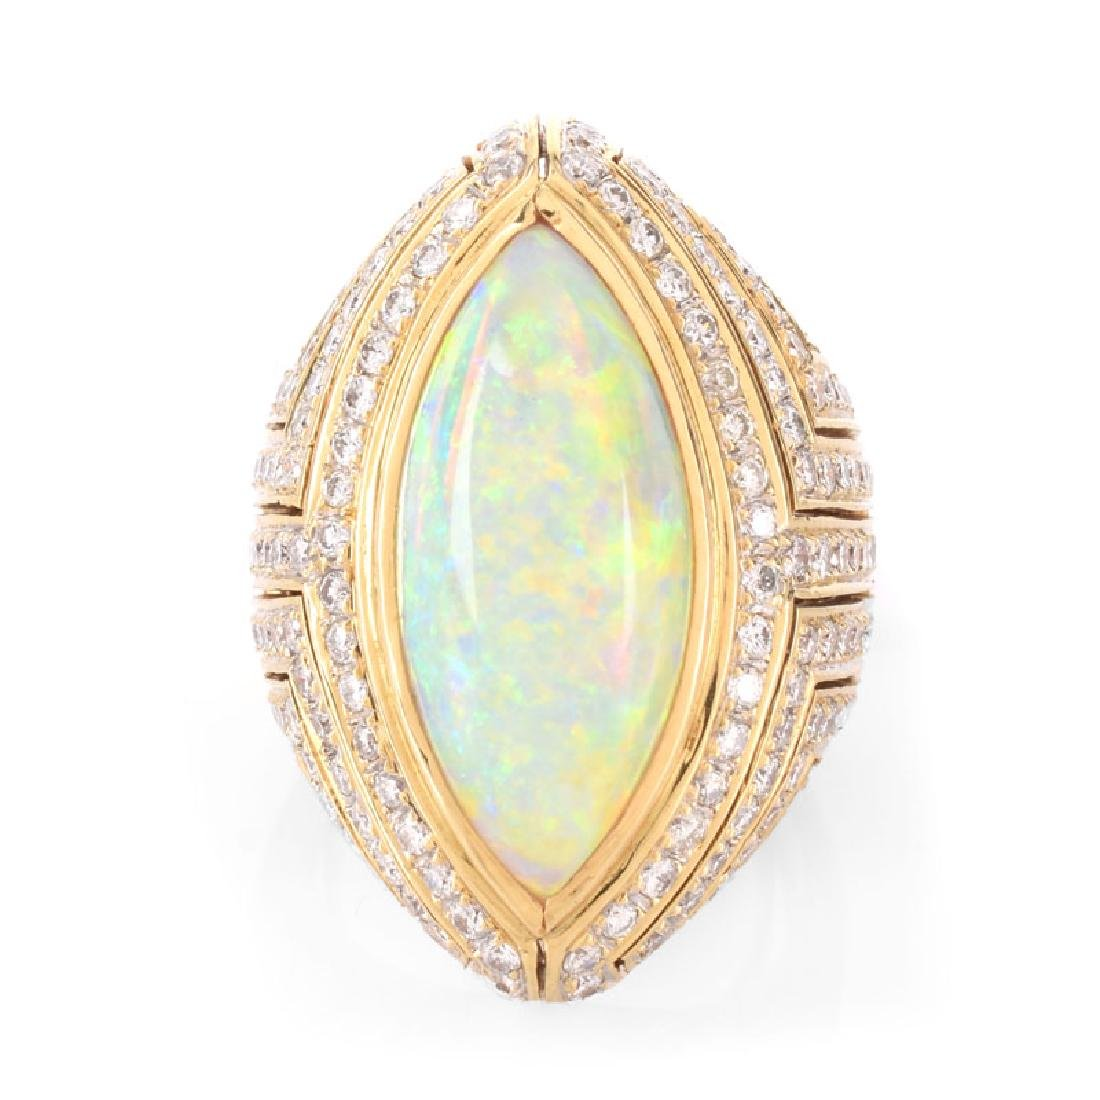 Vintage Approx. 12.0 Carat Marquise Cabochon Opal, 3.0 - 2